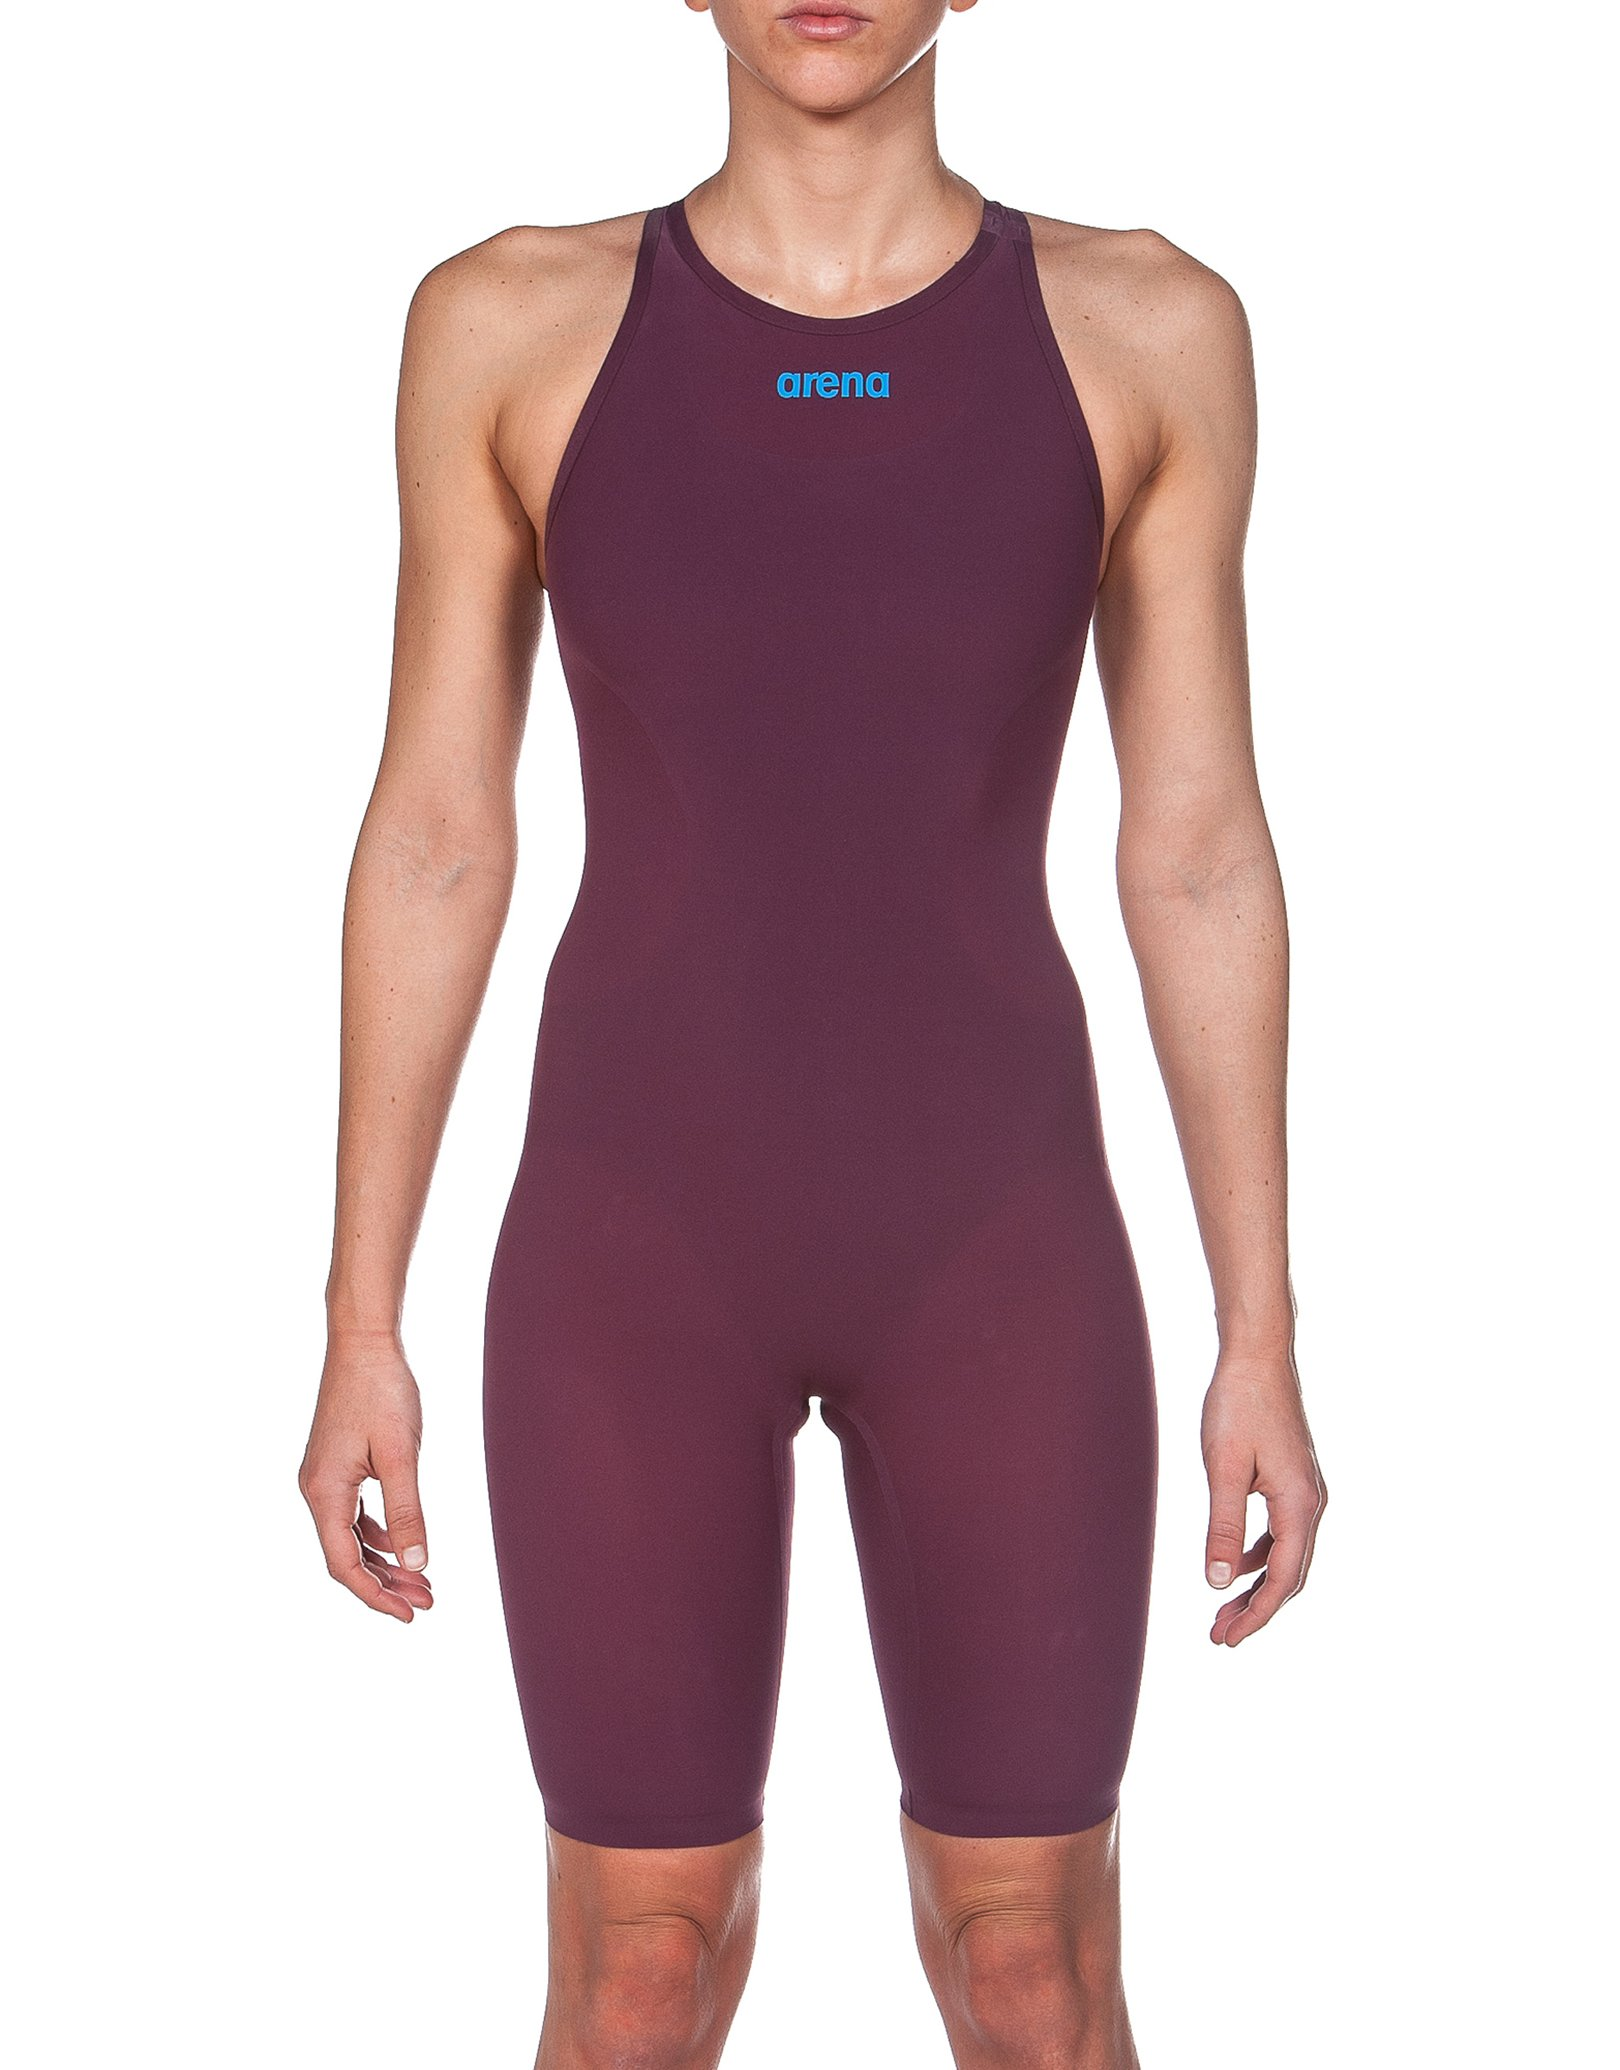 Arena Powerskin R-evo one FBSLOB Red Wine